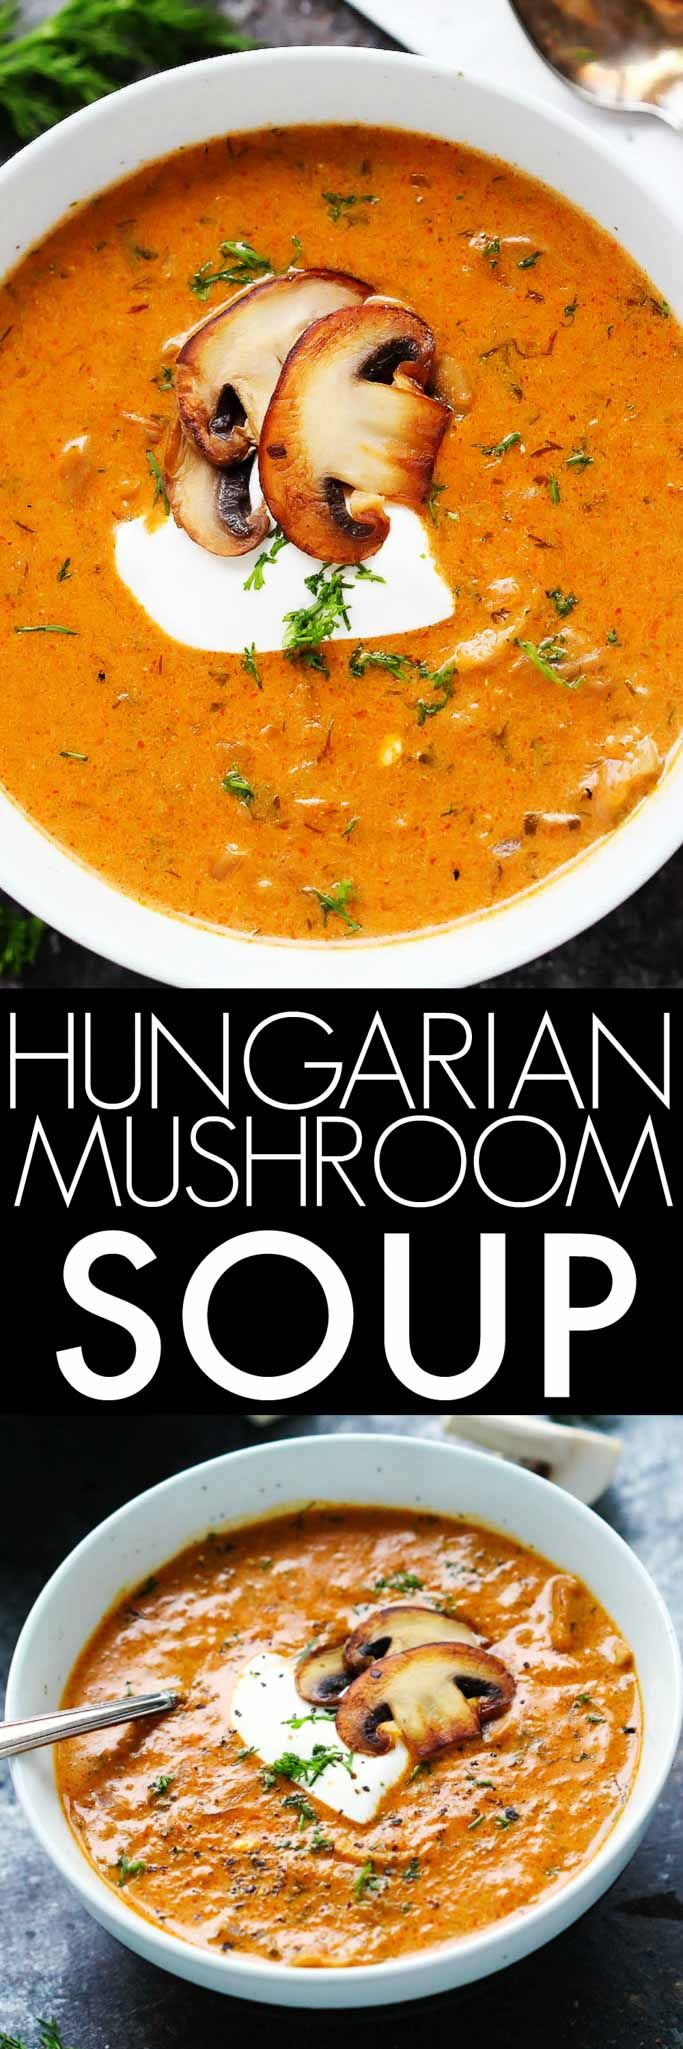 This Hungarian Mushroom Soup with Fresh Dill is creamy, with hints of smokiness and a great umami flavor. It's the perfect bowl of soup to warm up with this winter!